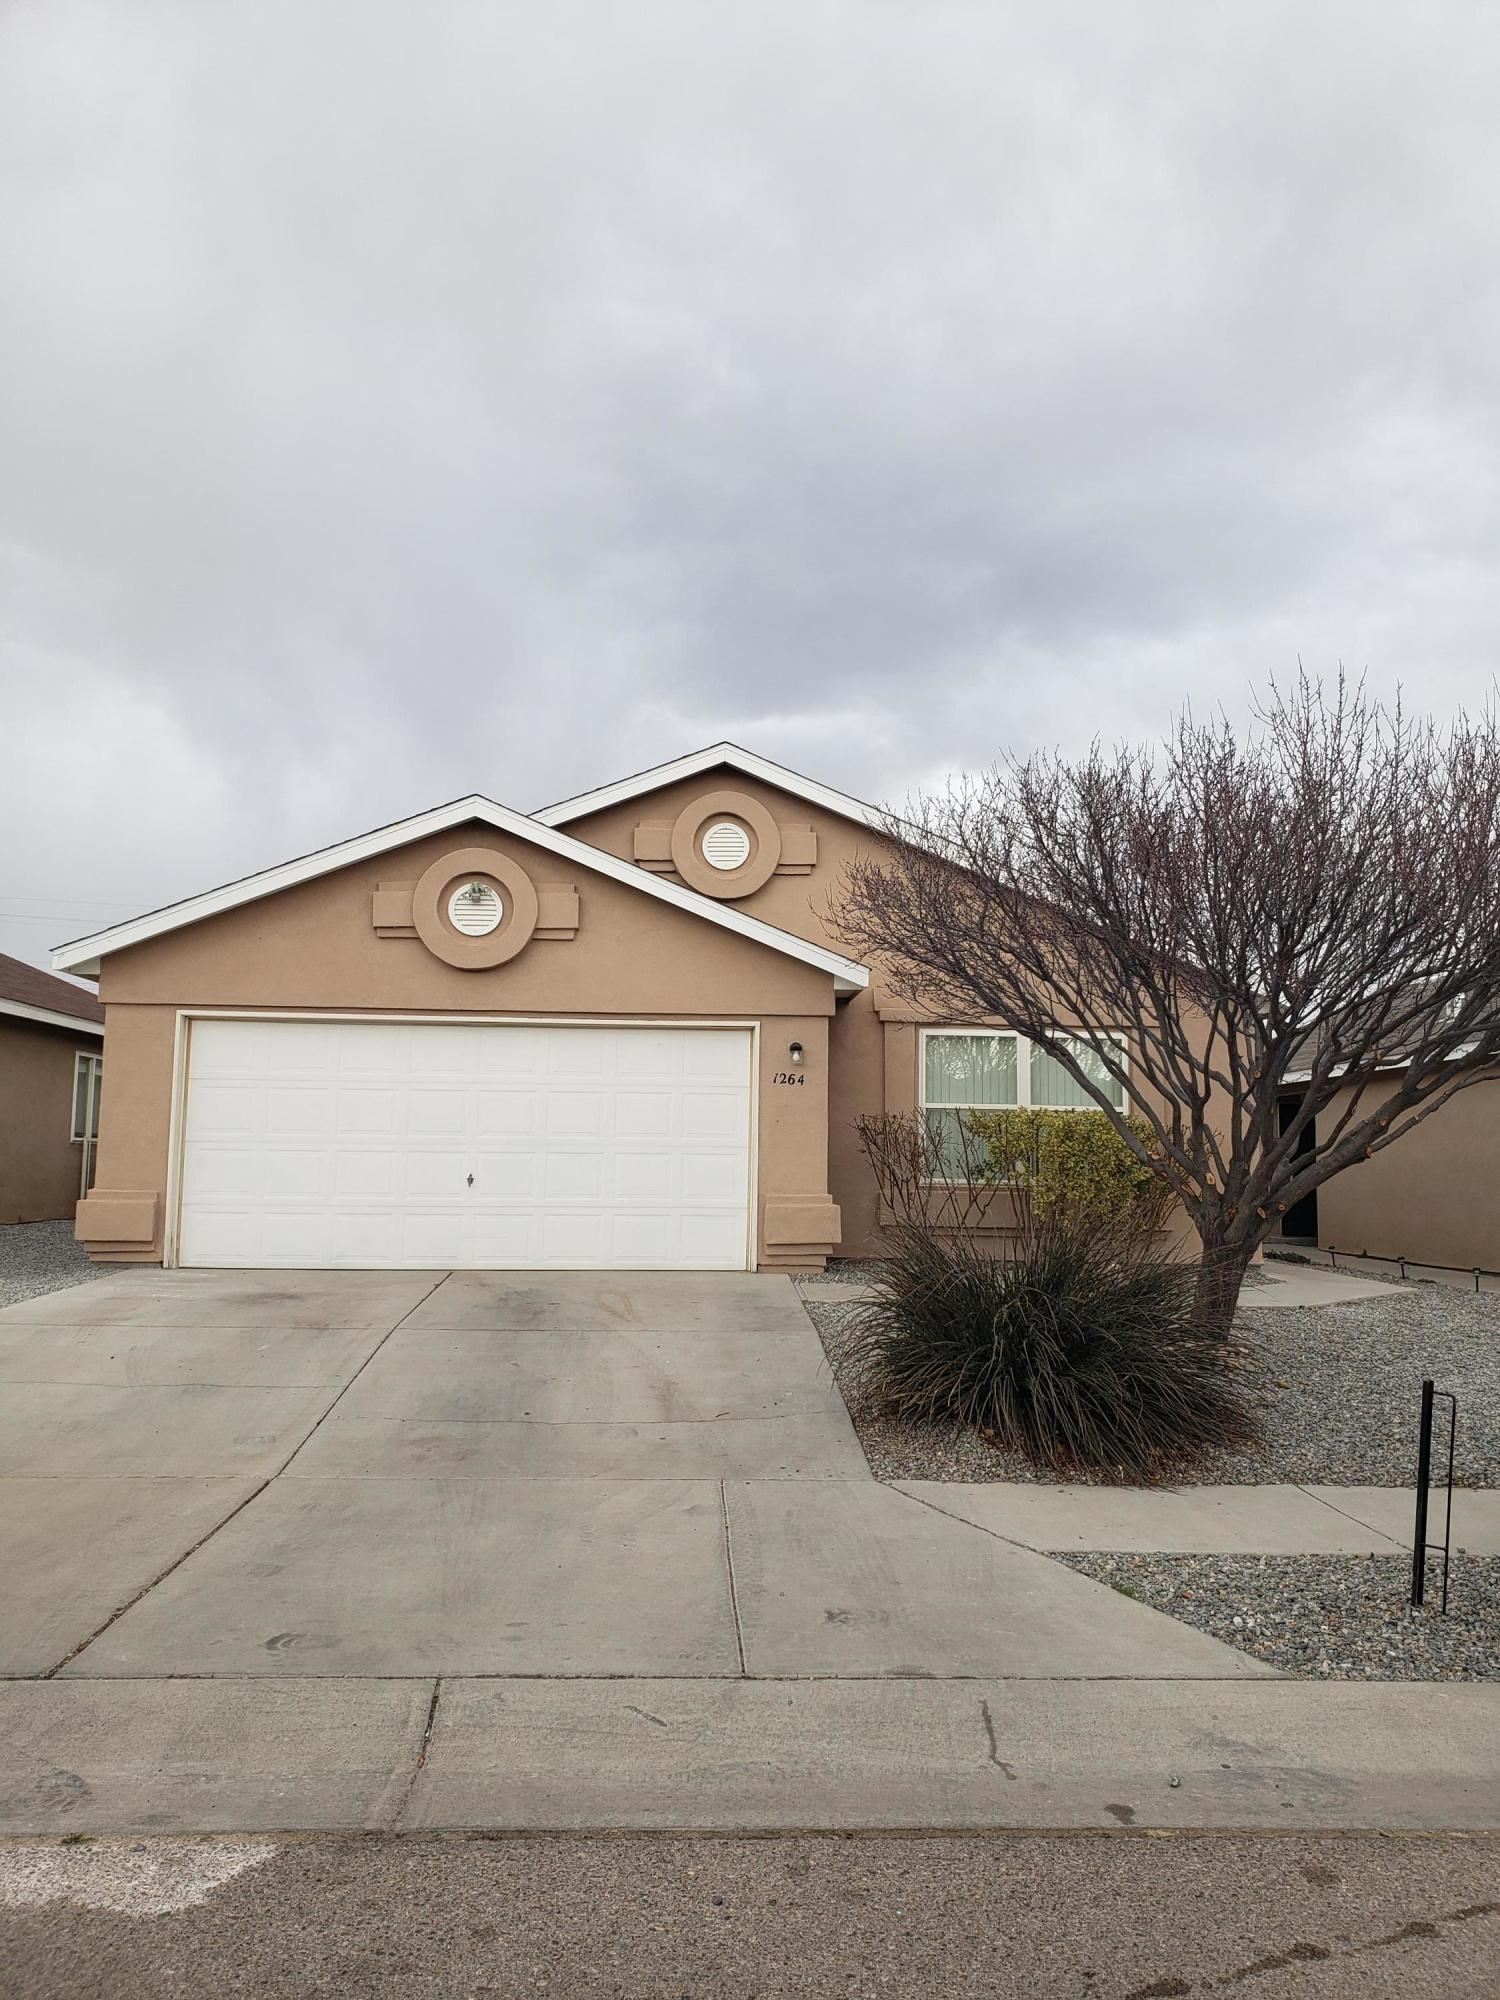 Welcome to this nice and bright well kept home in growing Southwest Heights location! This energy efficient Artistic home has vaulted ceilings, an open concept layout with nice sized bedrooms, and walk in closets. This is a very functional floorplan. Kitchen has plenty of cabinets and storage. Backyard has great views of the Sandias and City lights! No neighbors behind you/ just open space! This one will go fast! Don't miss it,  make an appointment today!